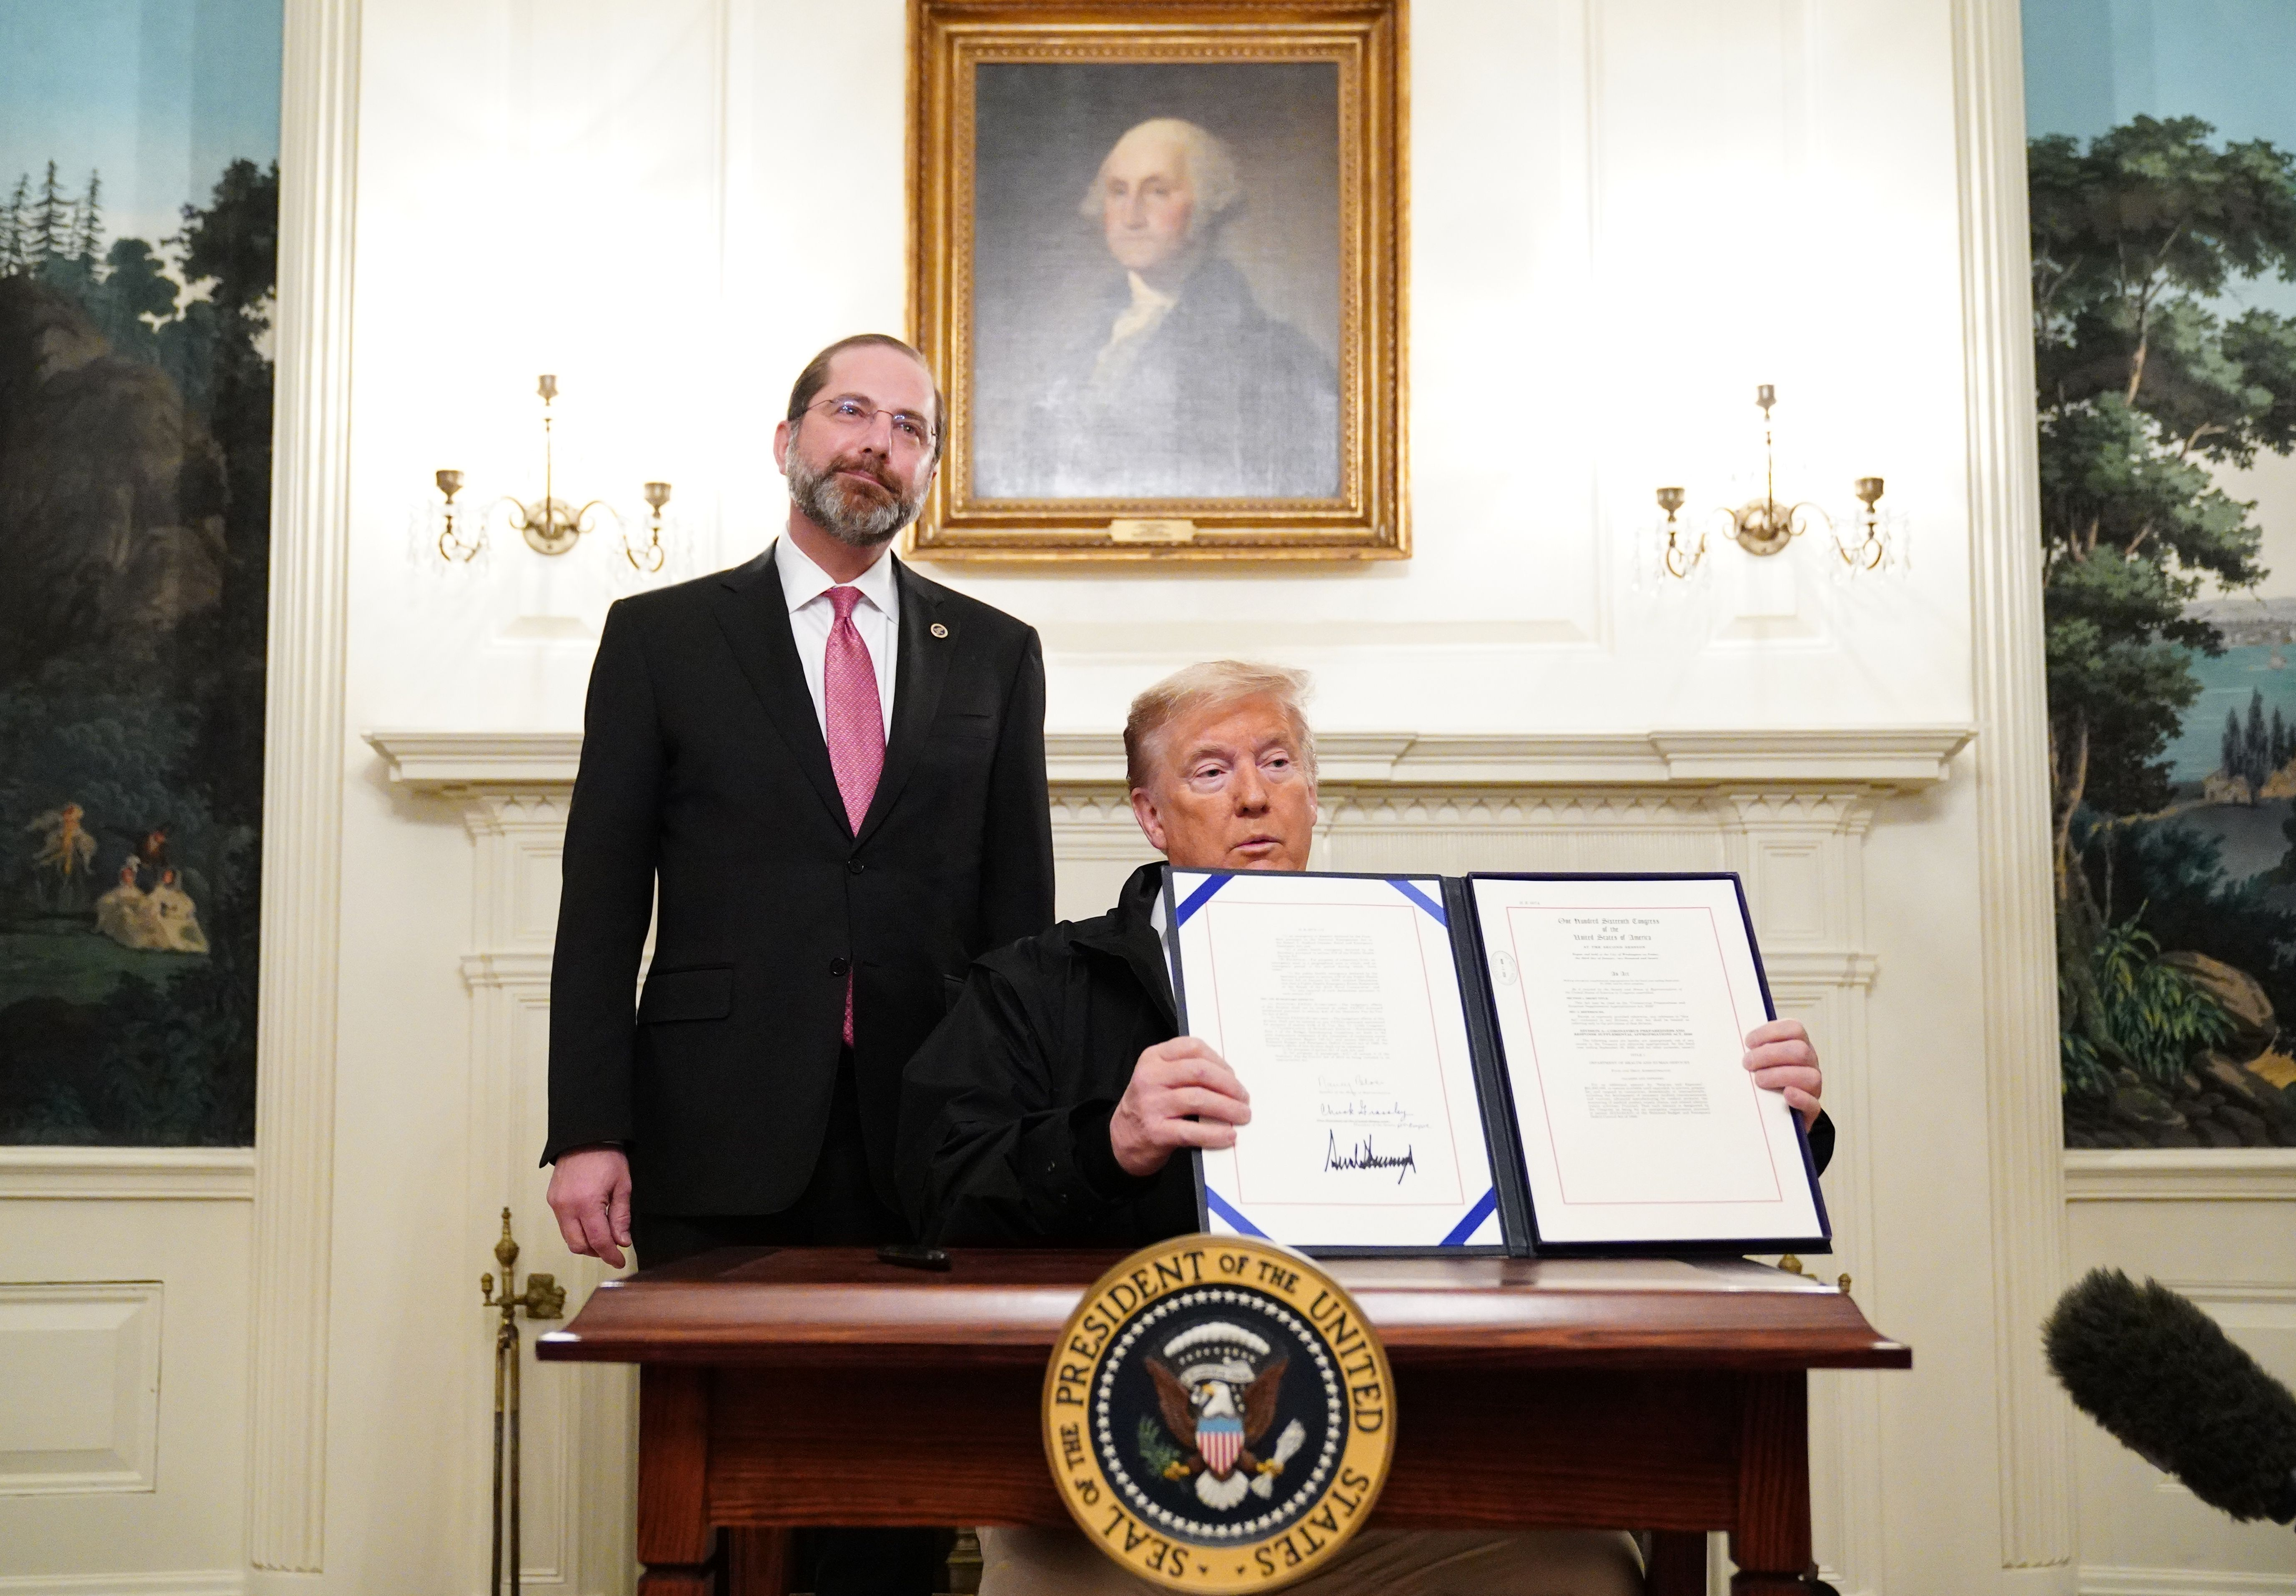 US President Donald Trump holds up an USD 8 billion emergency funding bill to combat COVID-19, coronavirus, after signing it as US Health Secretary Alex Azar looks on in the Diplomatic Room of the White House in Washington, DC on March 6, 2020. (Photo by MANDEL NGAN/AFP via Getty Images)